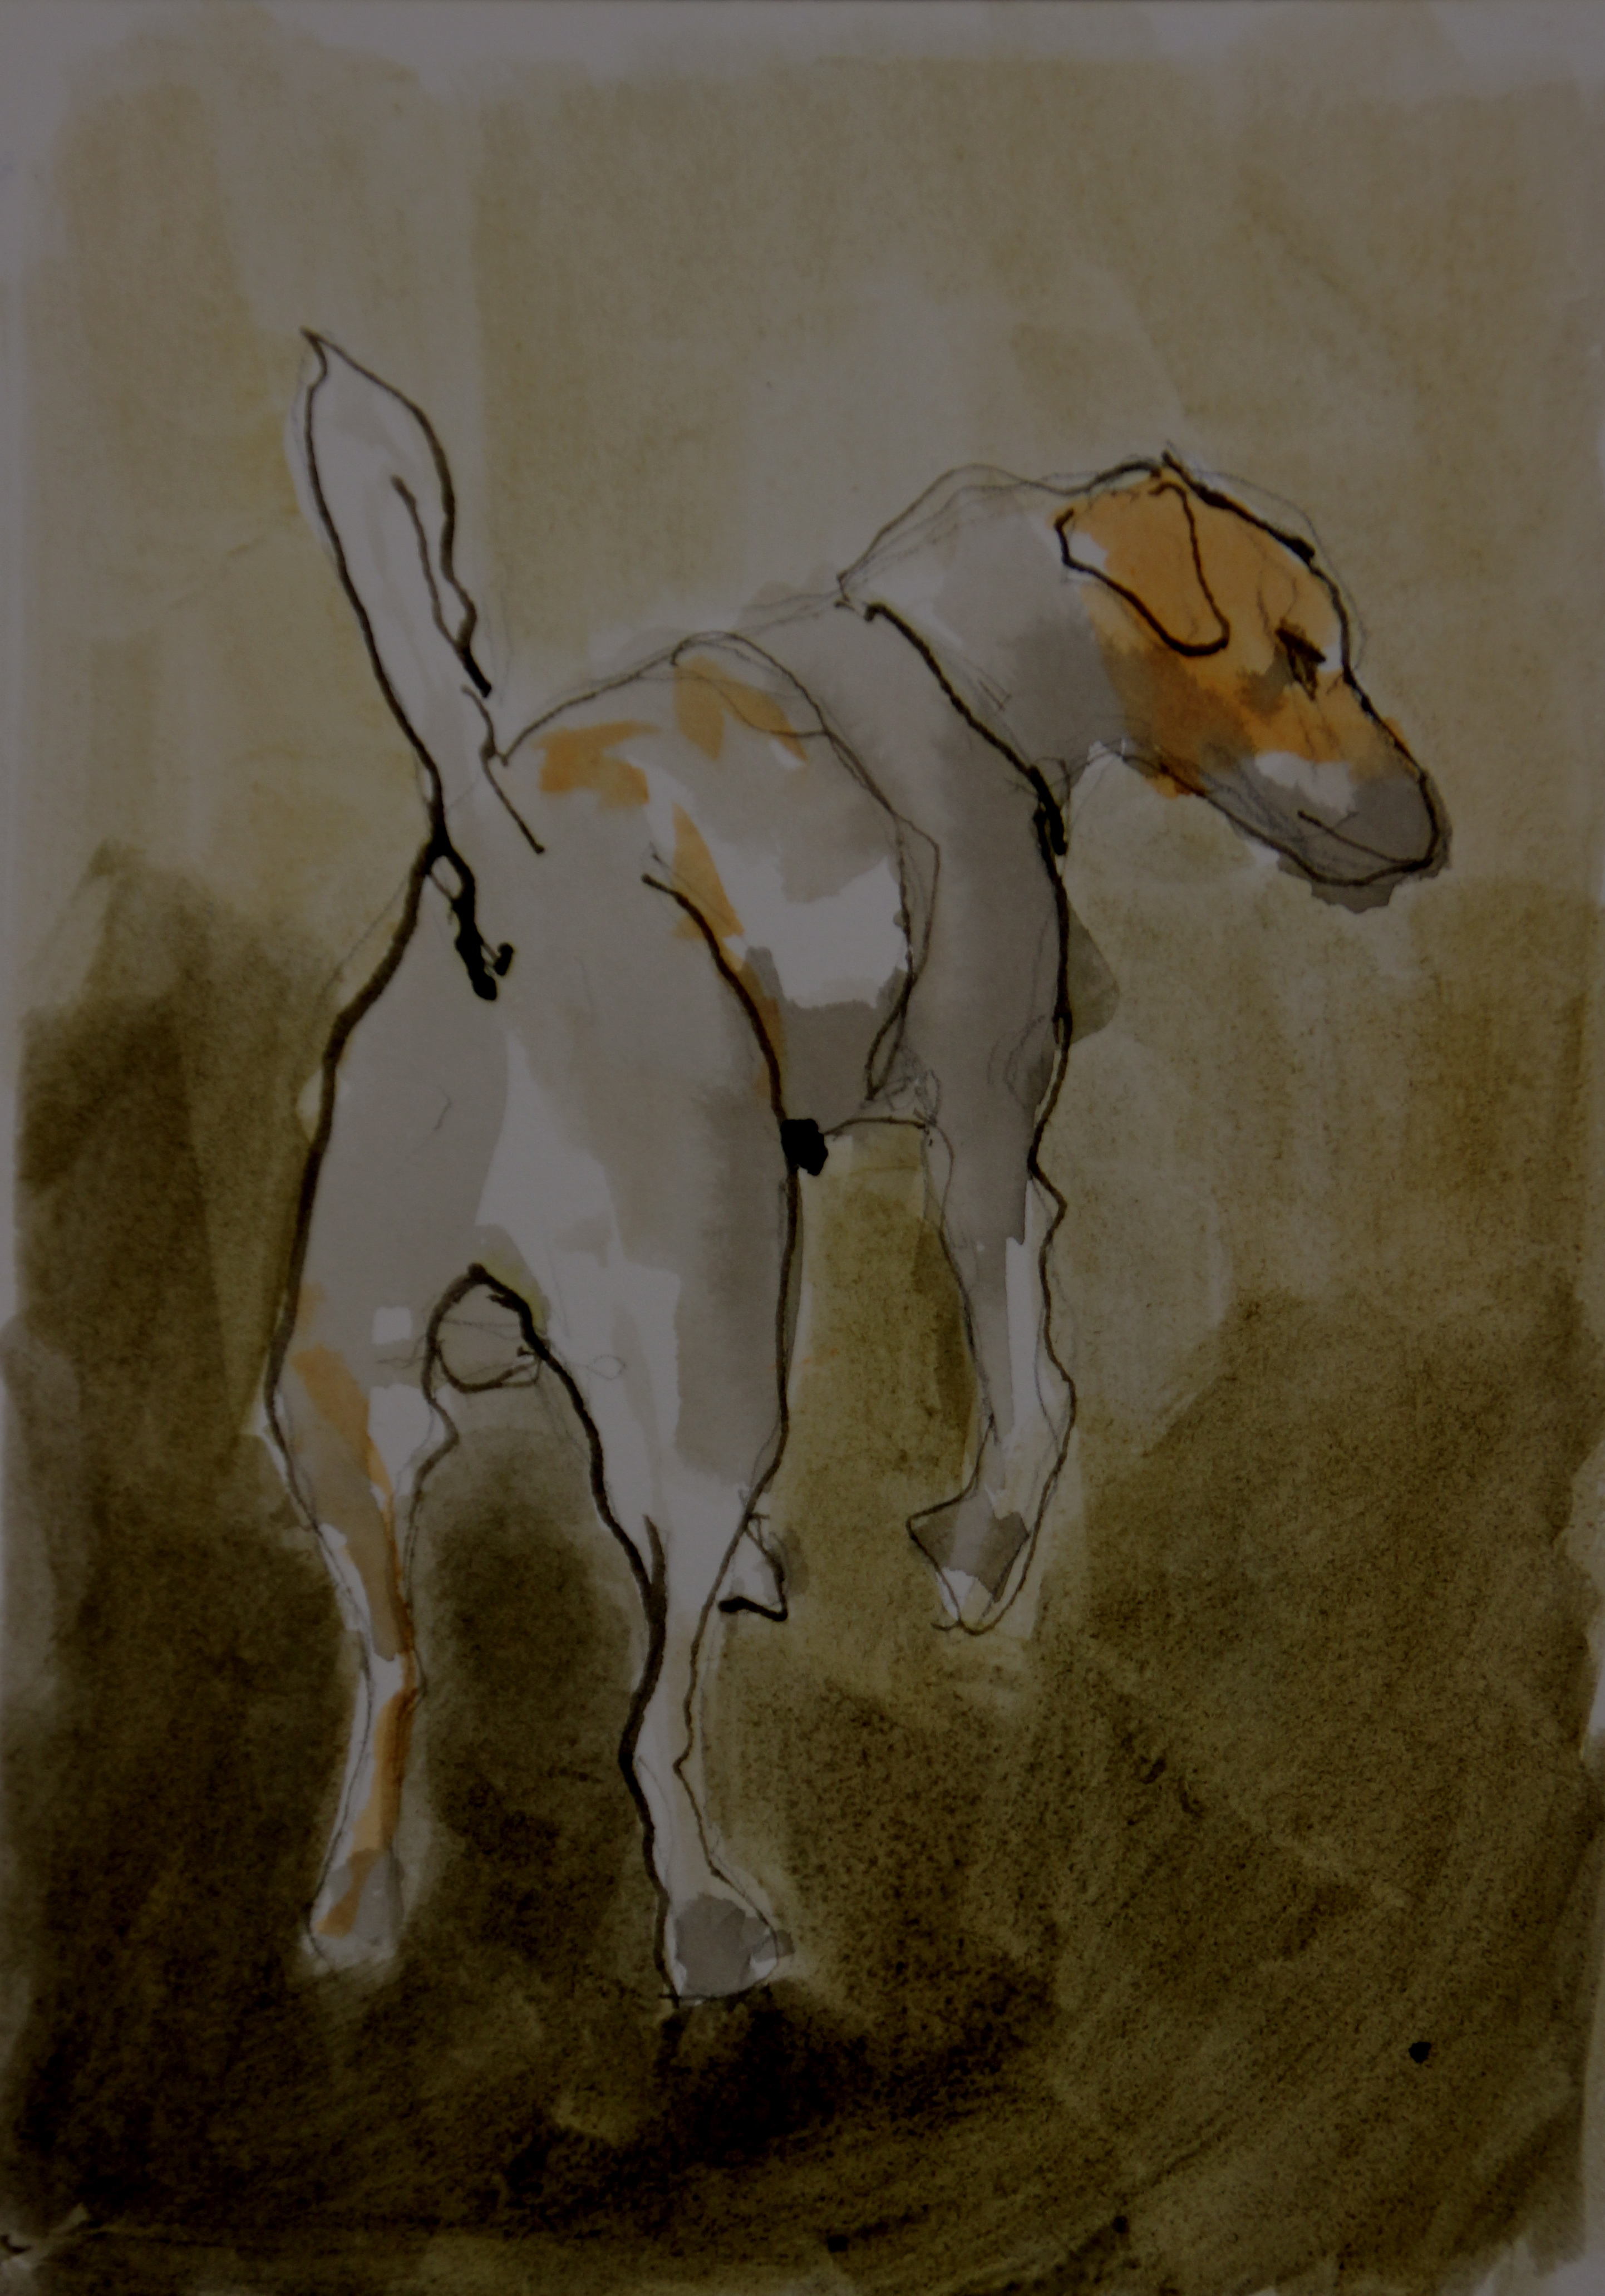 Jack Russell - Vence #5, 2015